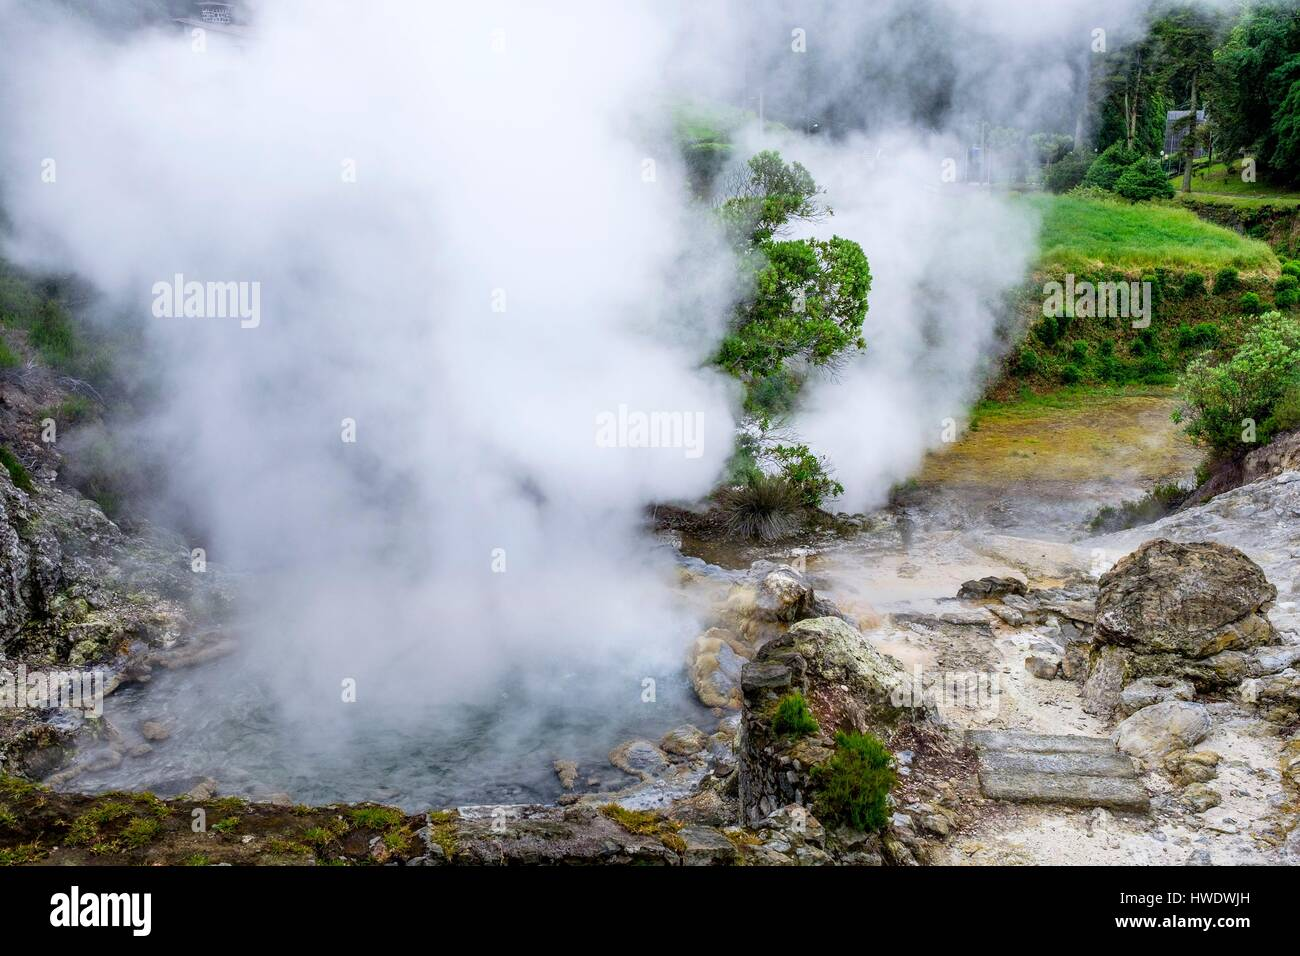 Portugal, Azores archipelago, Sao Miguel island, Furnas, active volcanic complex with 22 thermal springs and many - Stock Image